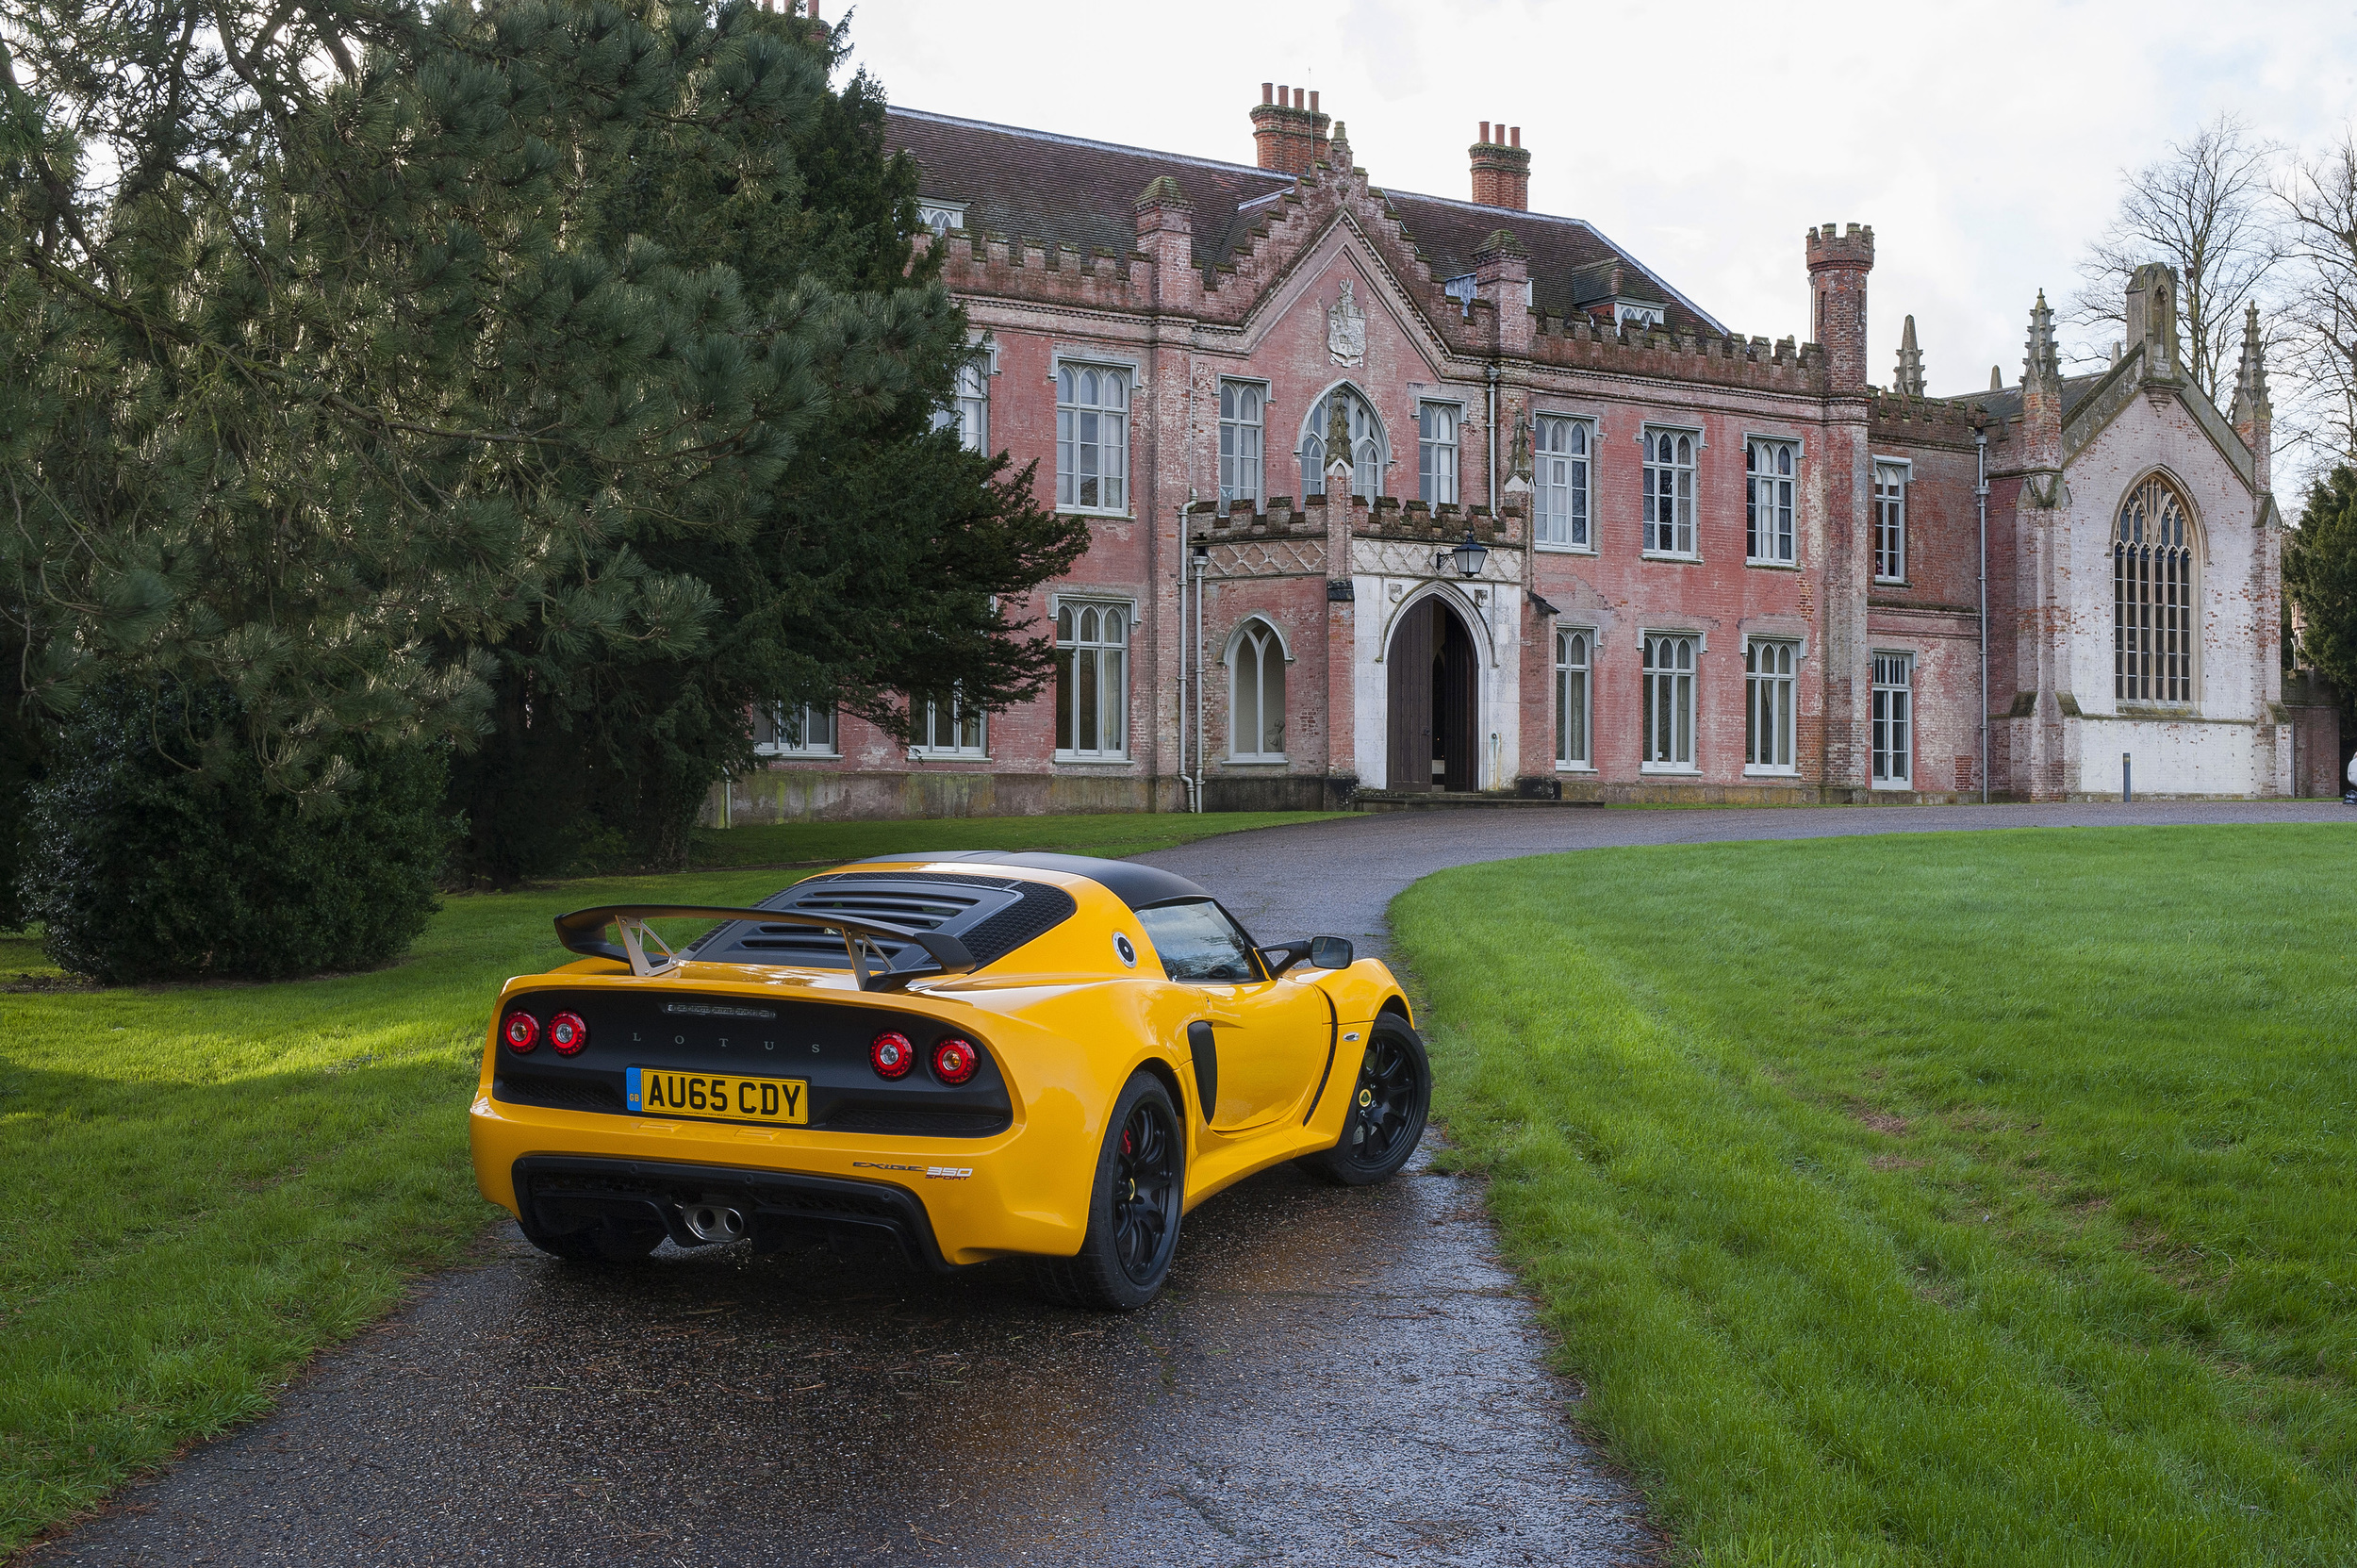 https://artofgears.com/wp-content/blogs.dir/346/files/2015/12/2015.12.9-Lotus-Exige-Sport-350-8.jpg